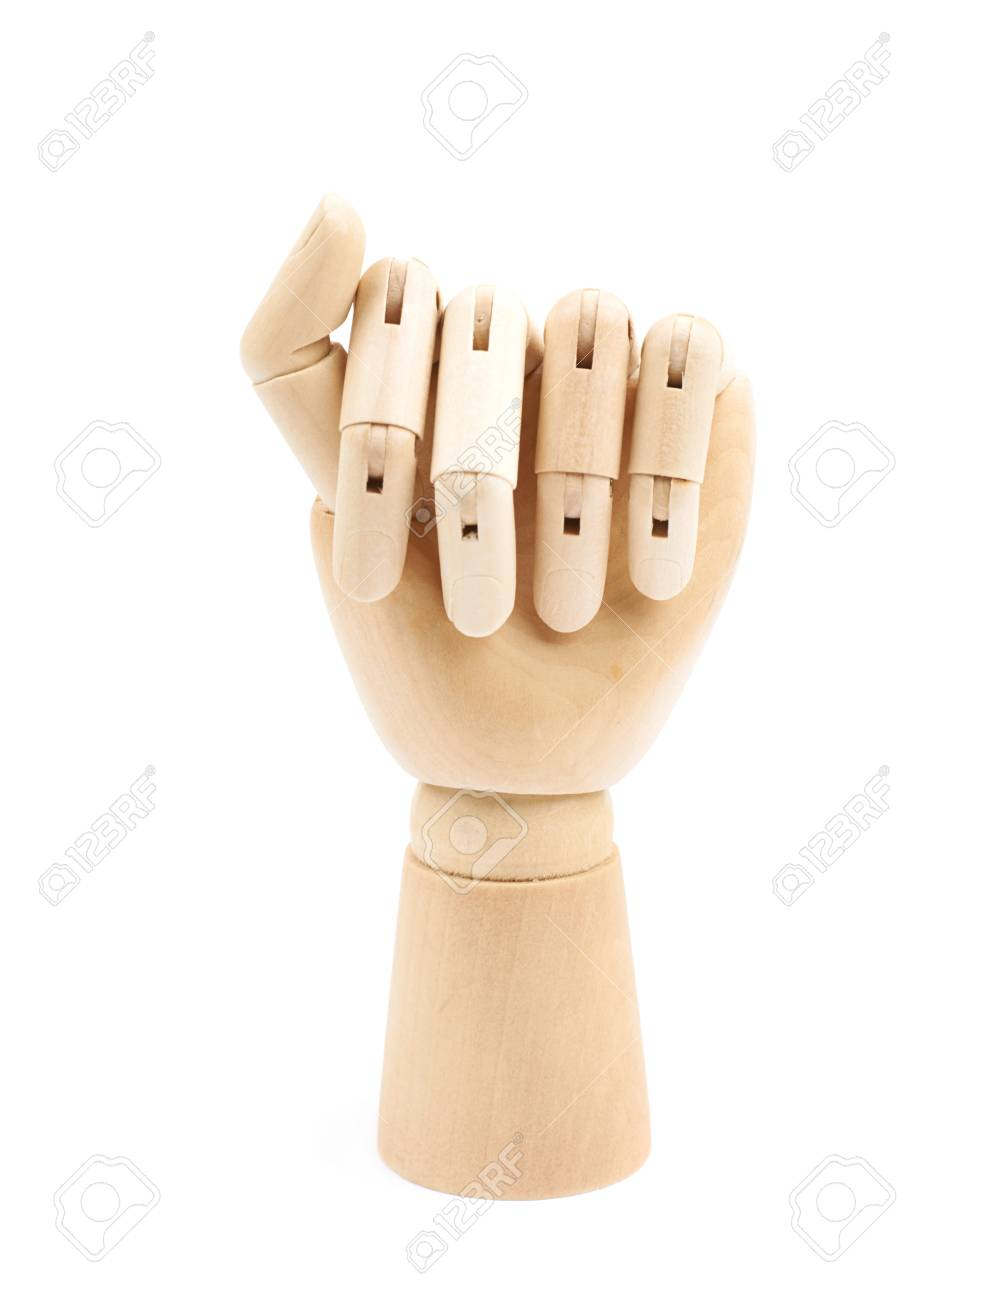 wooden hinge joint model of hand as a drawing reference composition